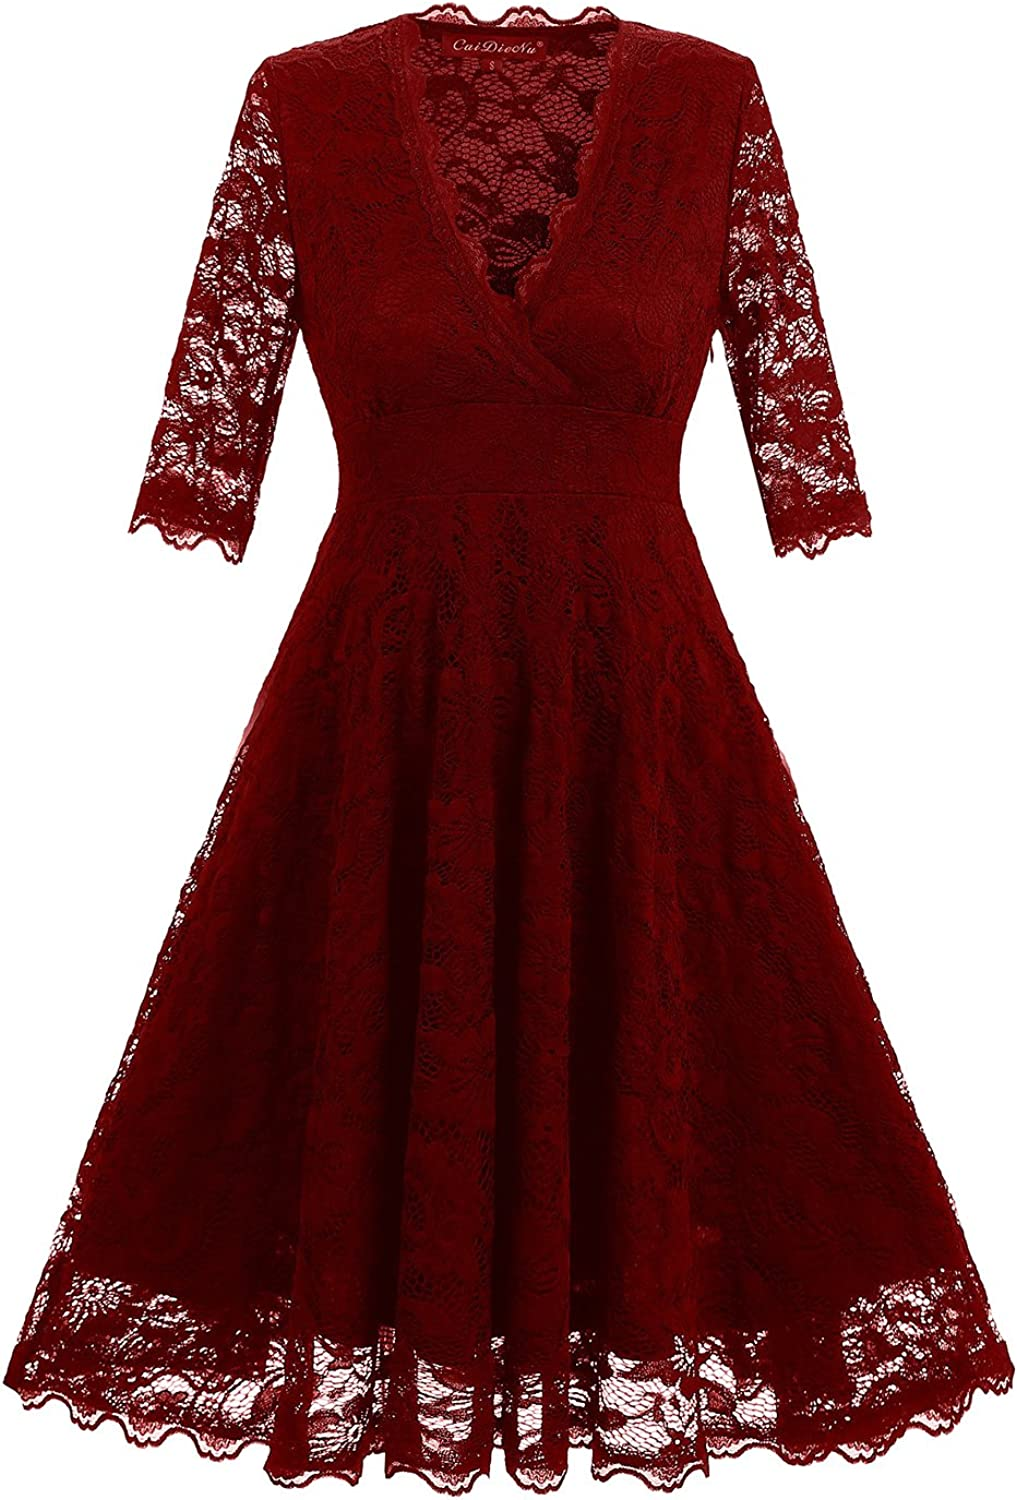 Absolute Rosy Women's 3 4 Sleeve V Neck Wrap Floral Lace Party Dress